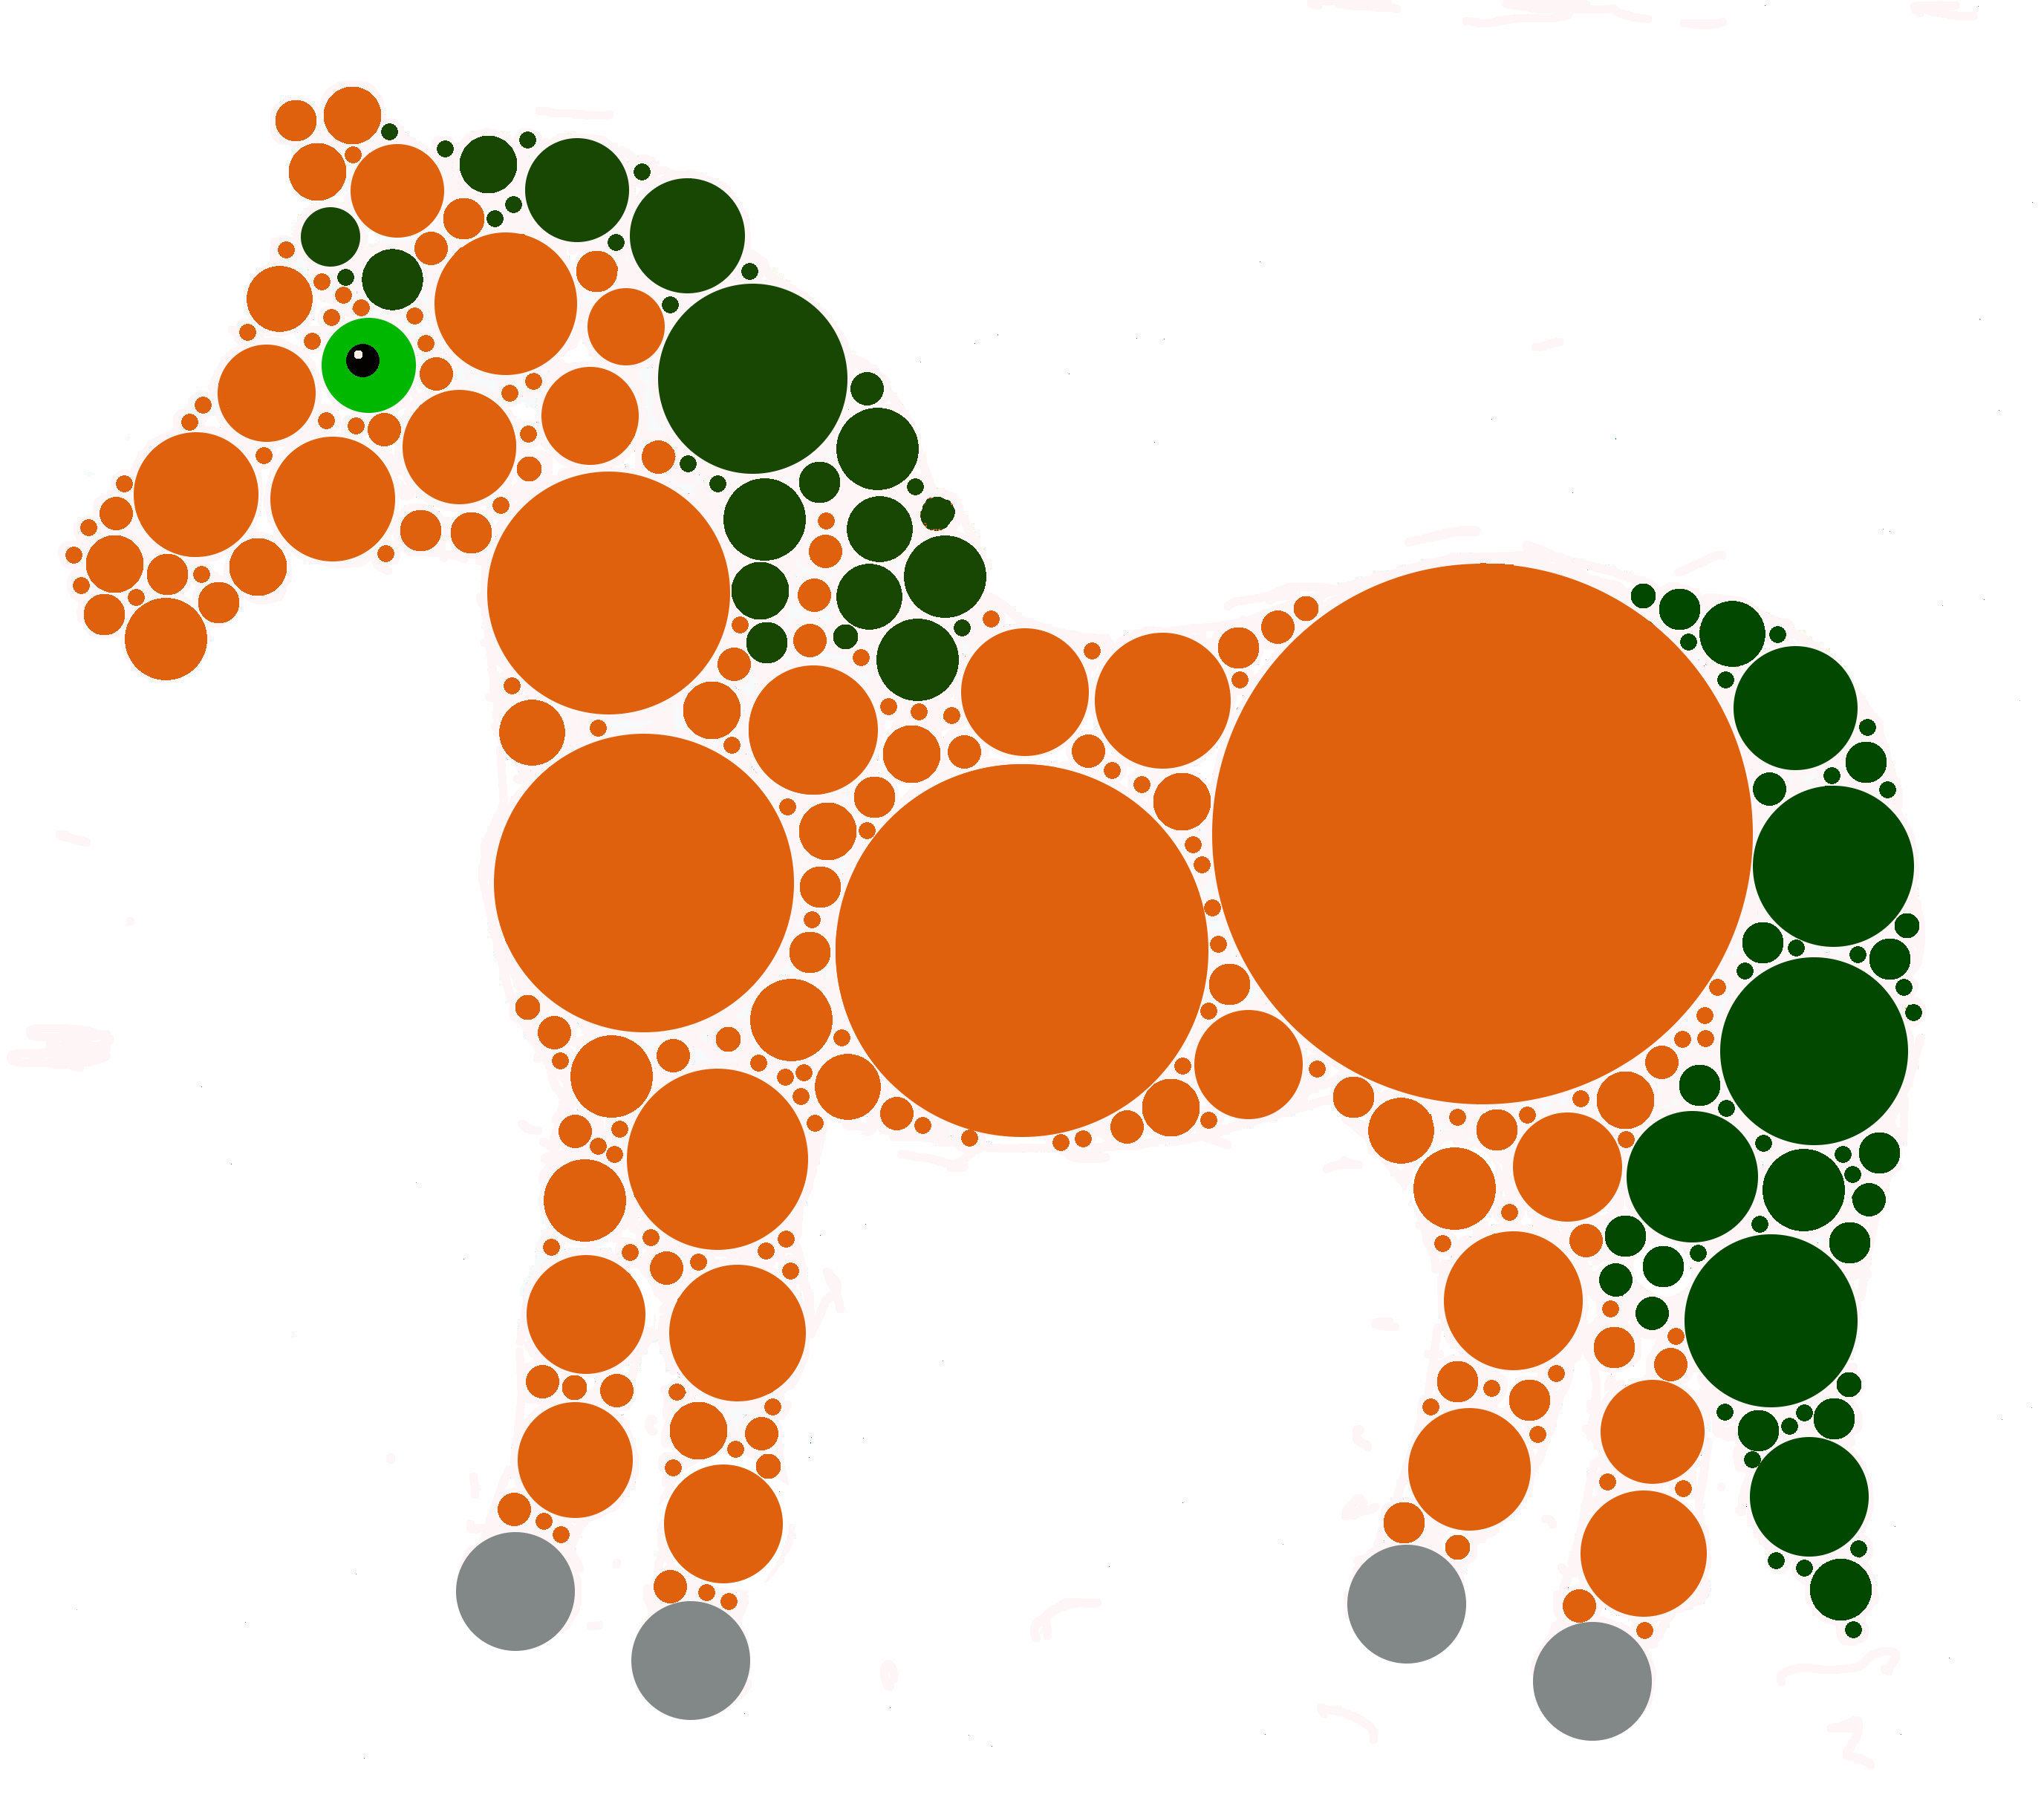 Green and orange horse made of circles